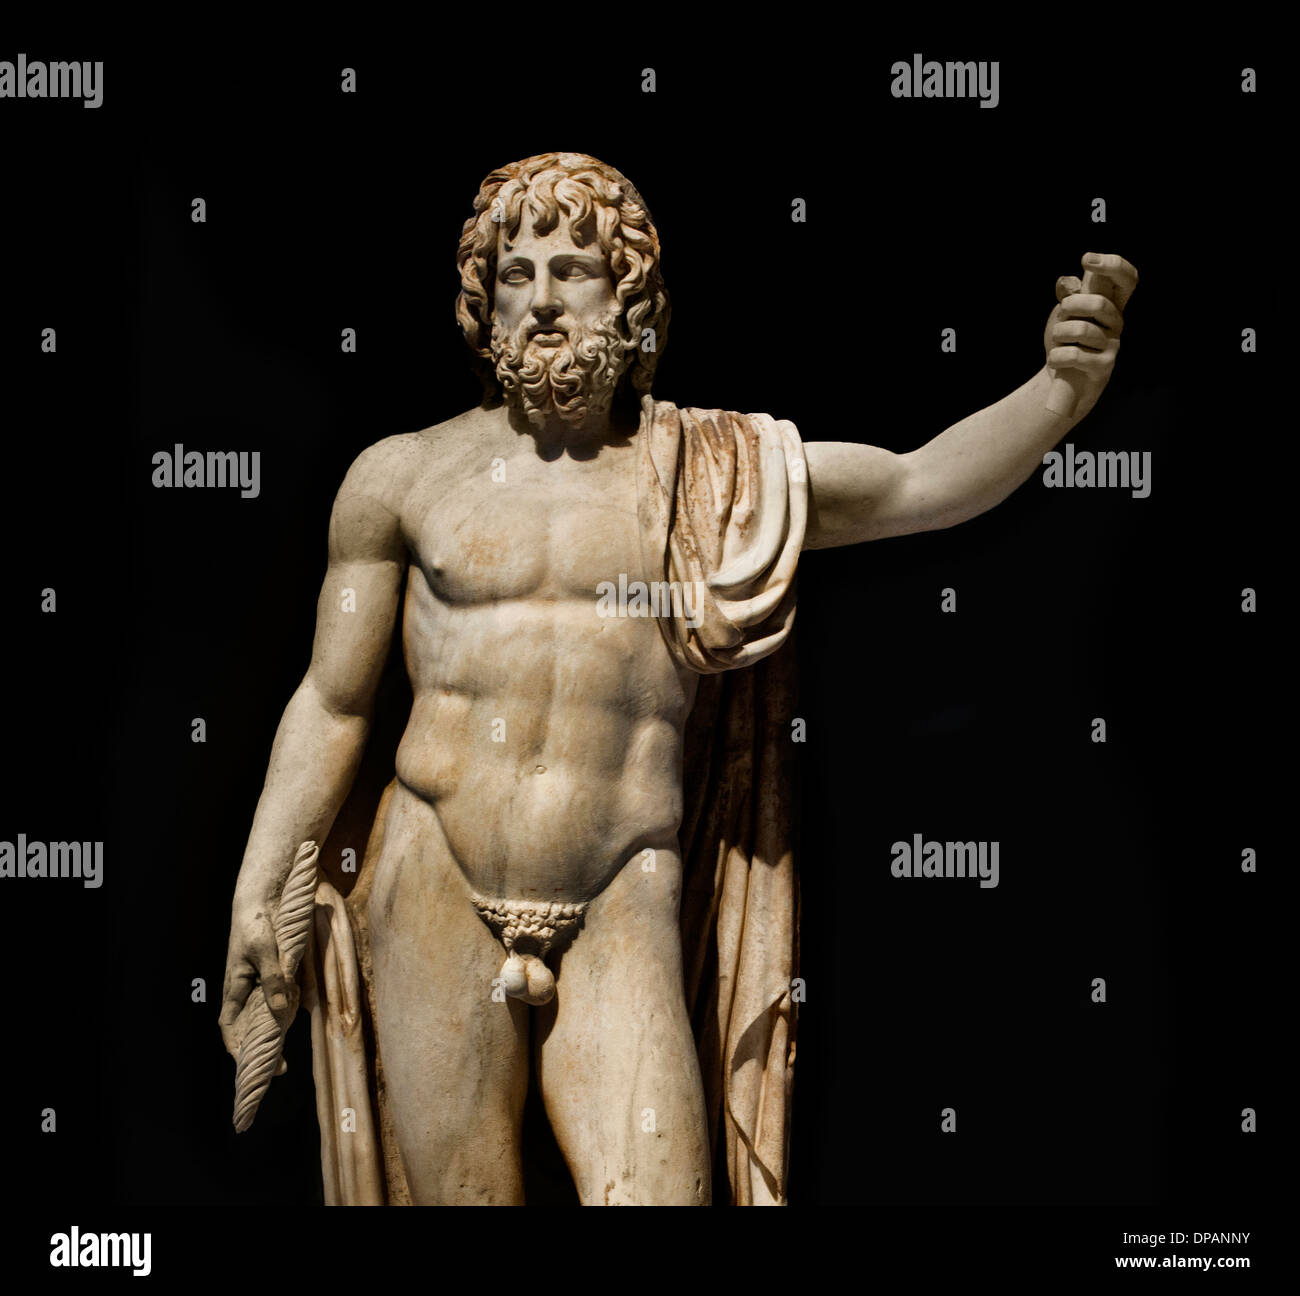 Jupiter king of the Roman gods bringing lightning and accompanied by eagle Rome Italy 150 AD marble - Stock Image